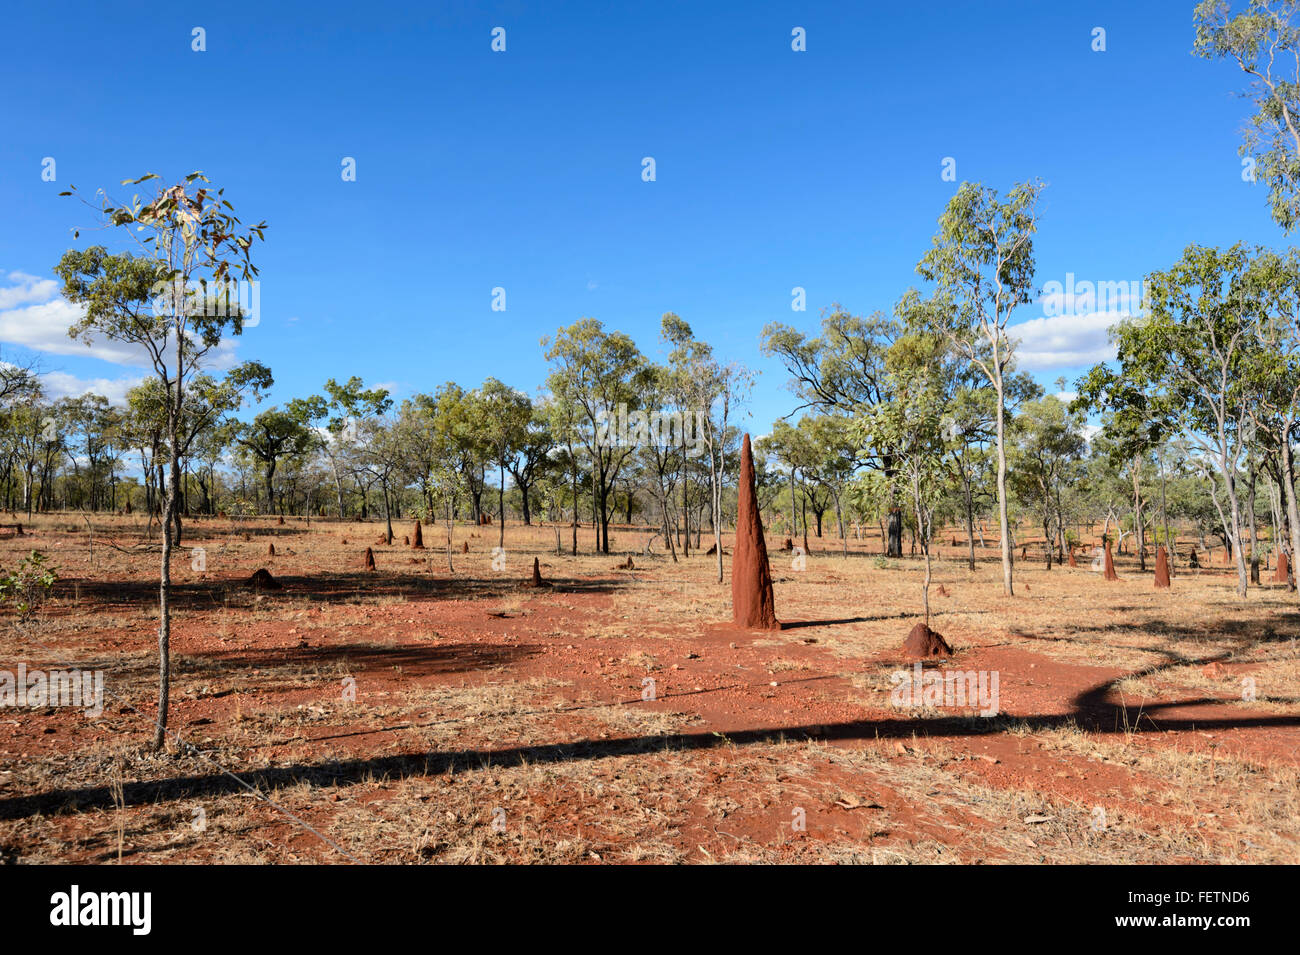 Termite Mounds, Gulf Savannah, Queensland, Australia - Stock Image